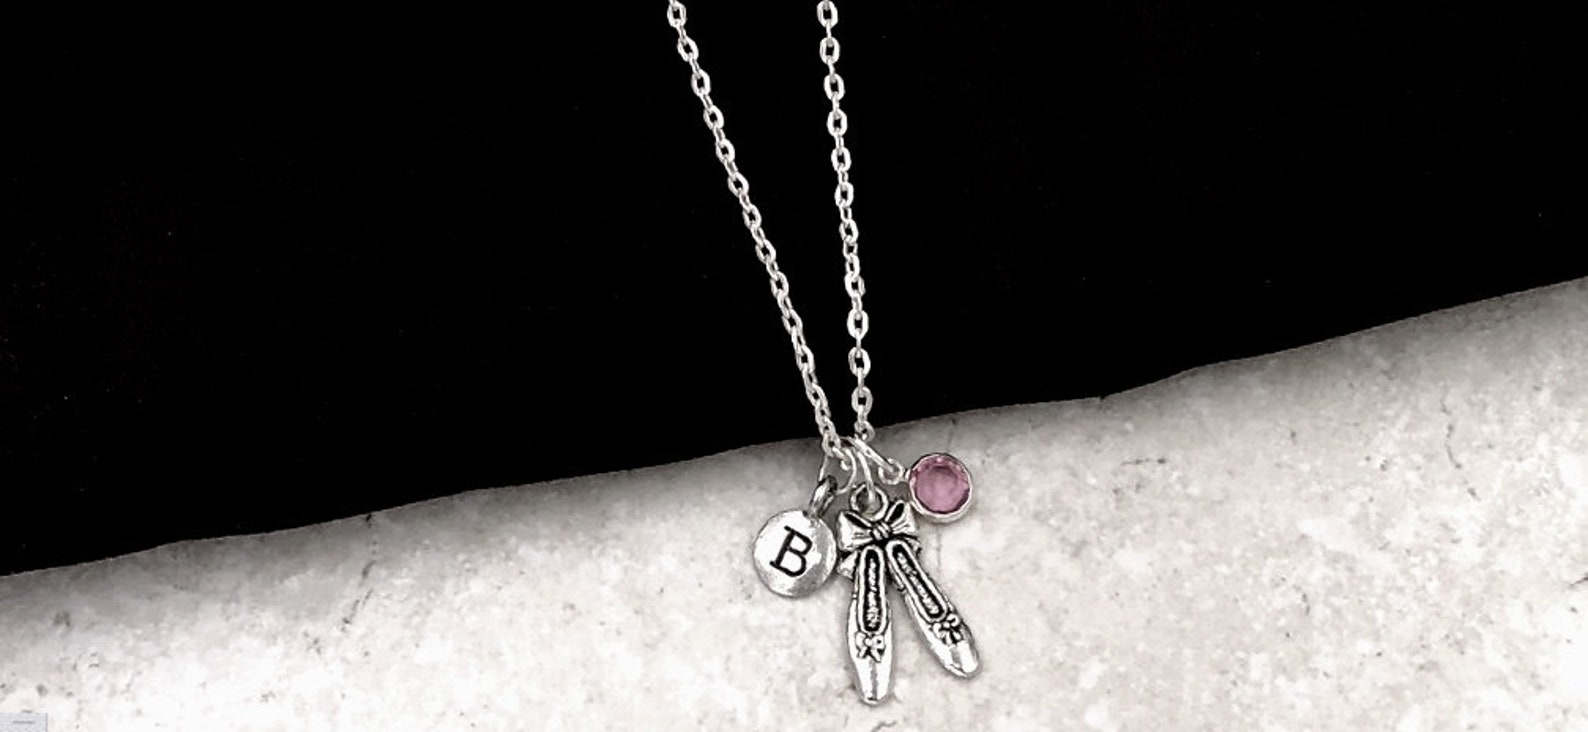 ballerina slipper necklace, dance ballet shoes jewelry, coach gift, women and girls dance team, personalized birthstone necklace